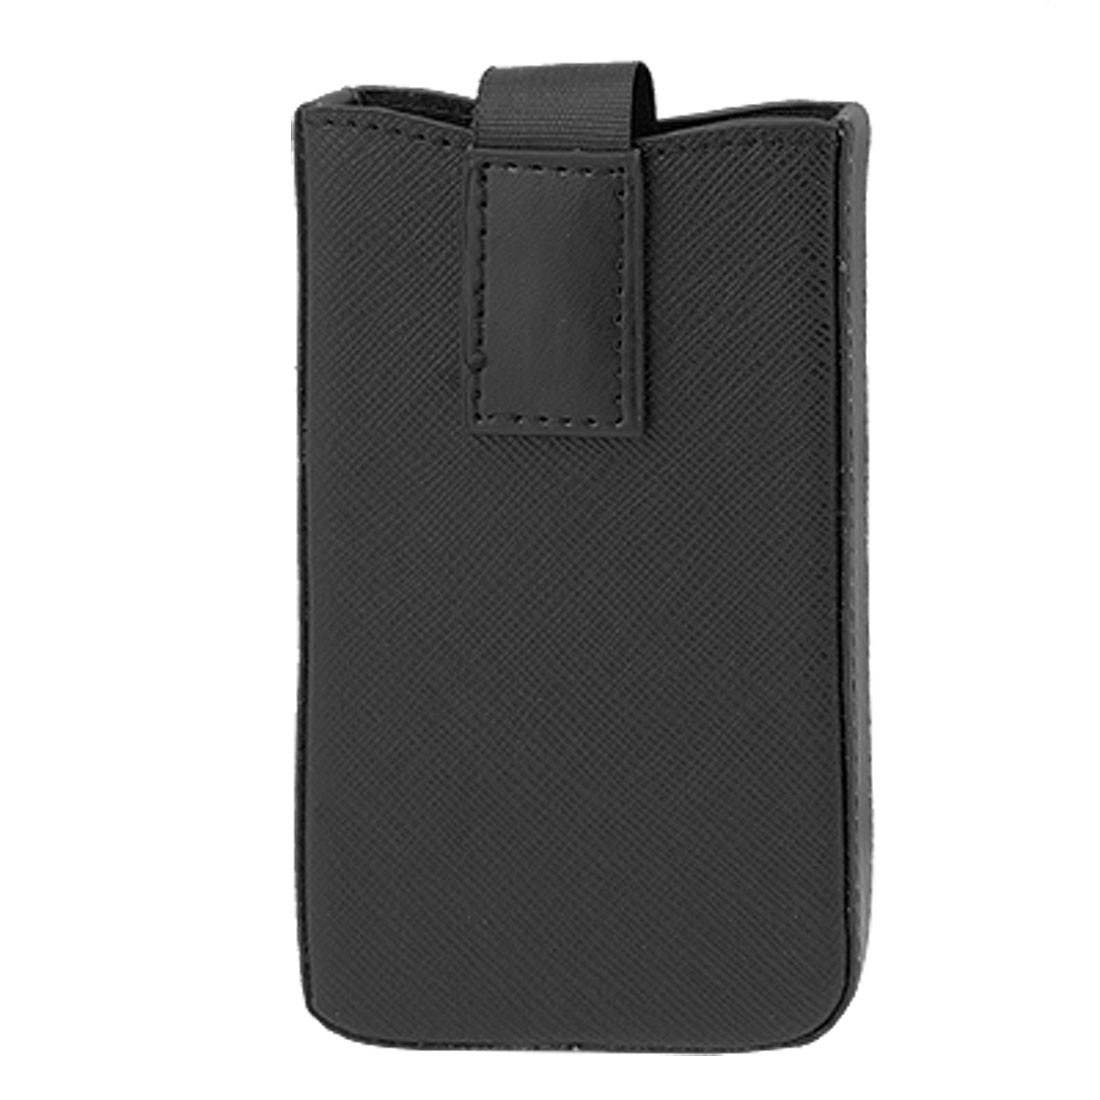 Black Faux Leather Skin Pull Up Pouch Bag for Apple iPhone 3G